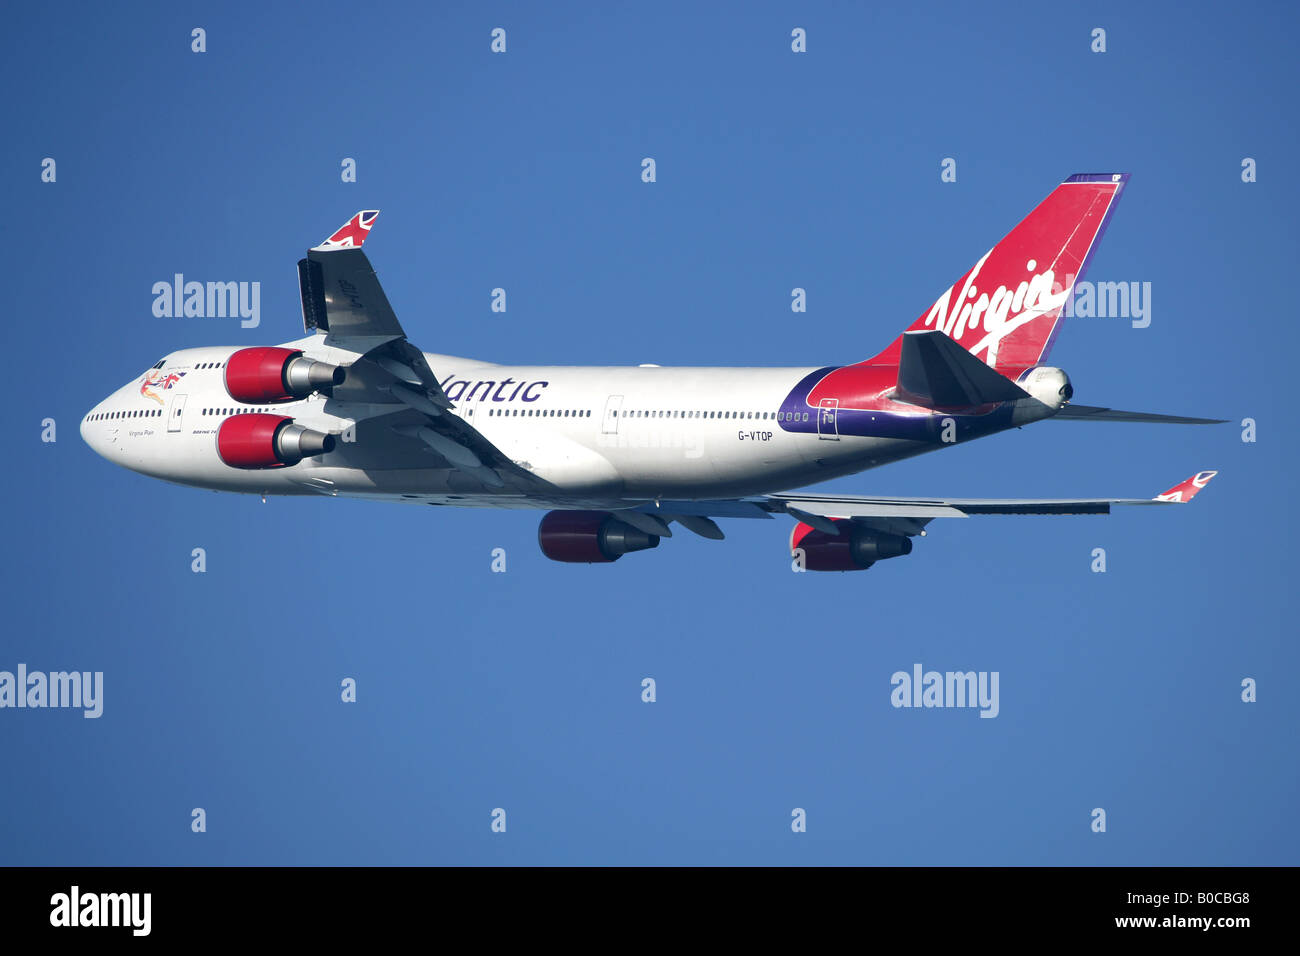 Boeing 747 400 Wind Diagrams Modern Design Of Wiring Diagram Virgin Atlantic Jumbo Jet In Blue Sky Stock Photo Rh Alamy Com F Left